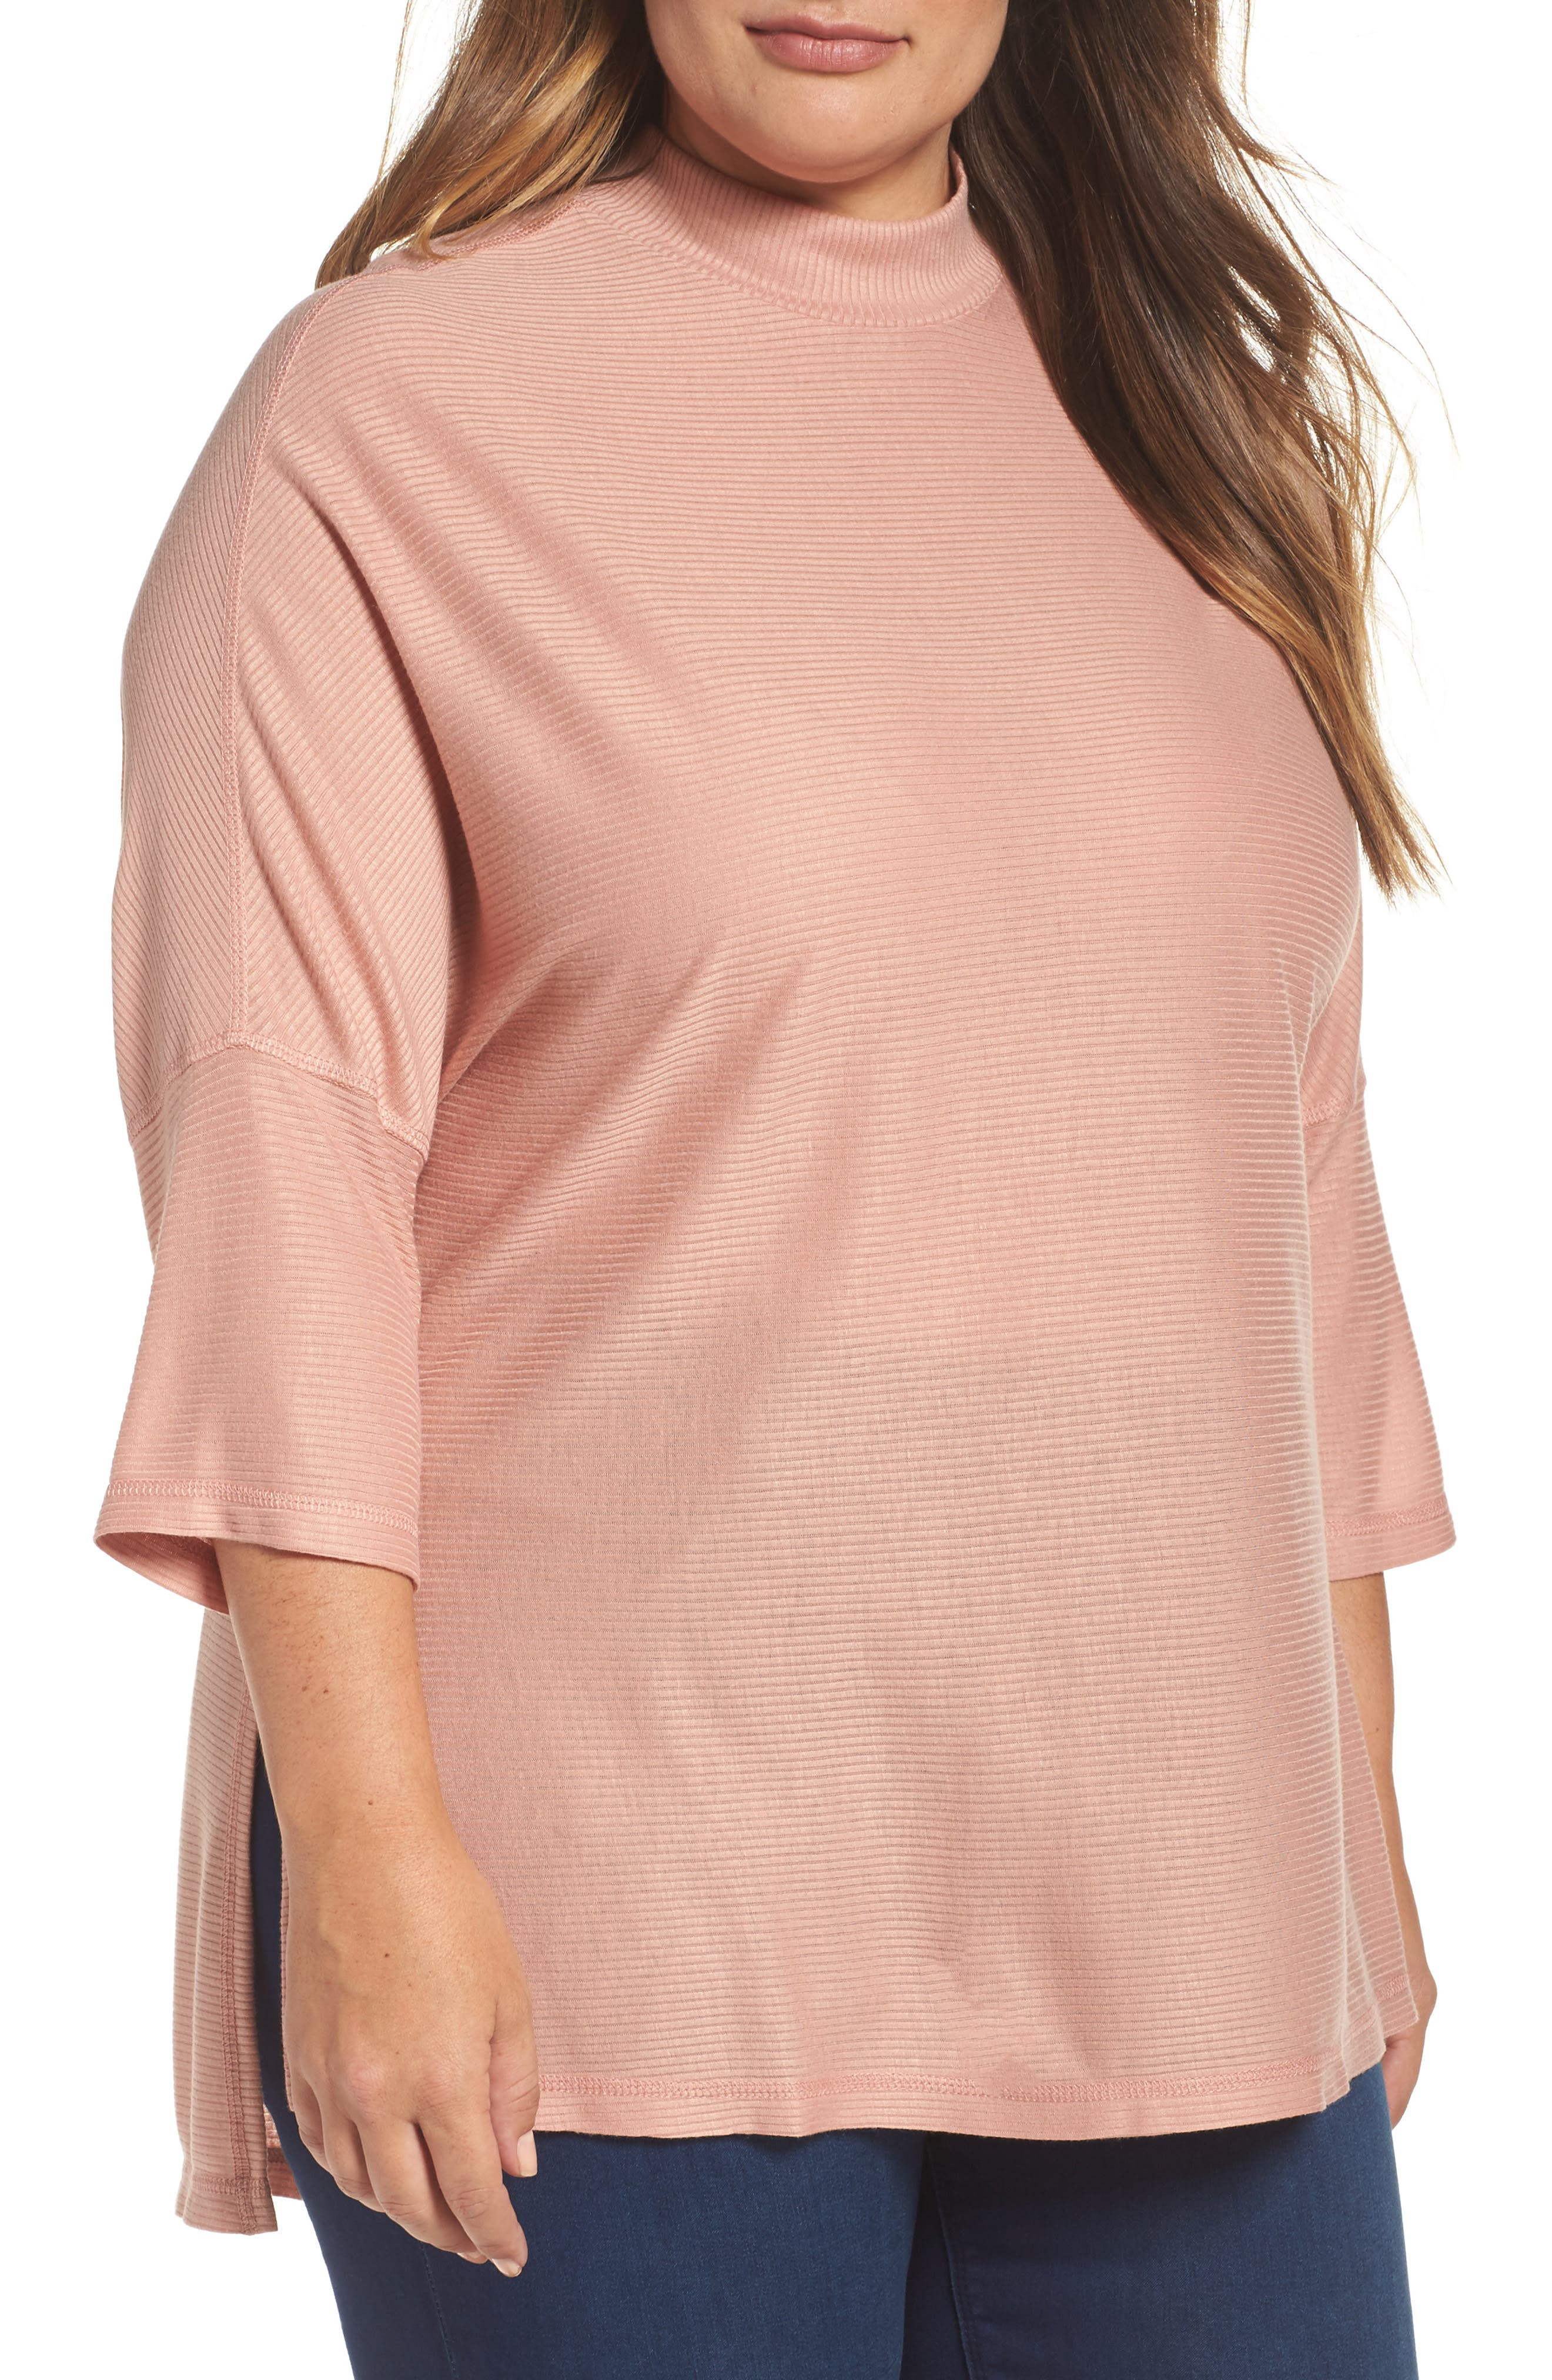 Main Image - Melissa McCarthy Seven7 Mock Neck Rib Knit Top (Plus Size)